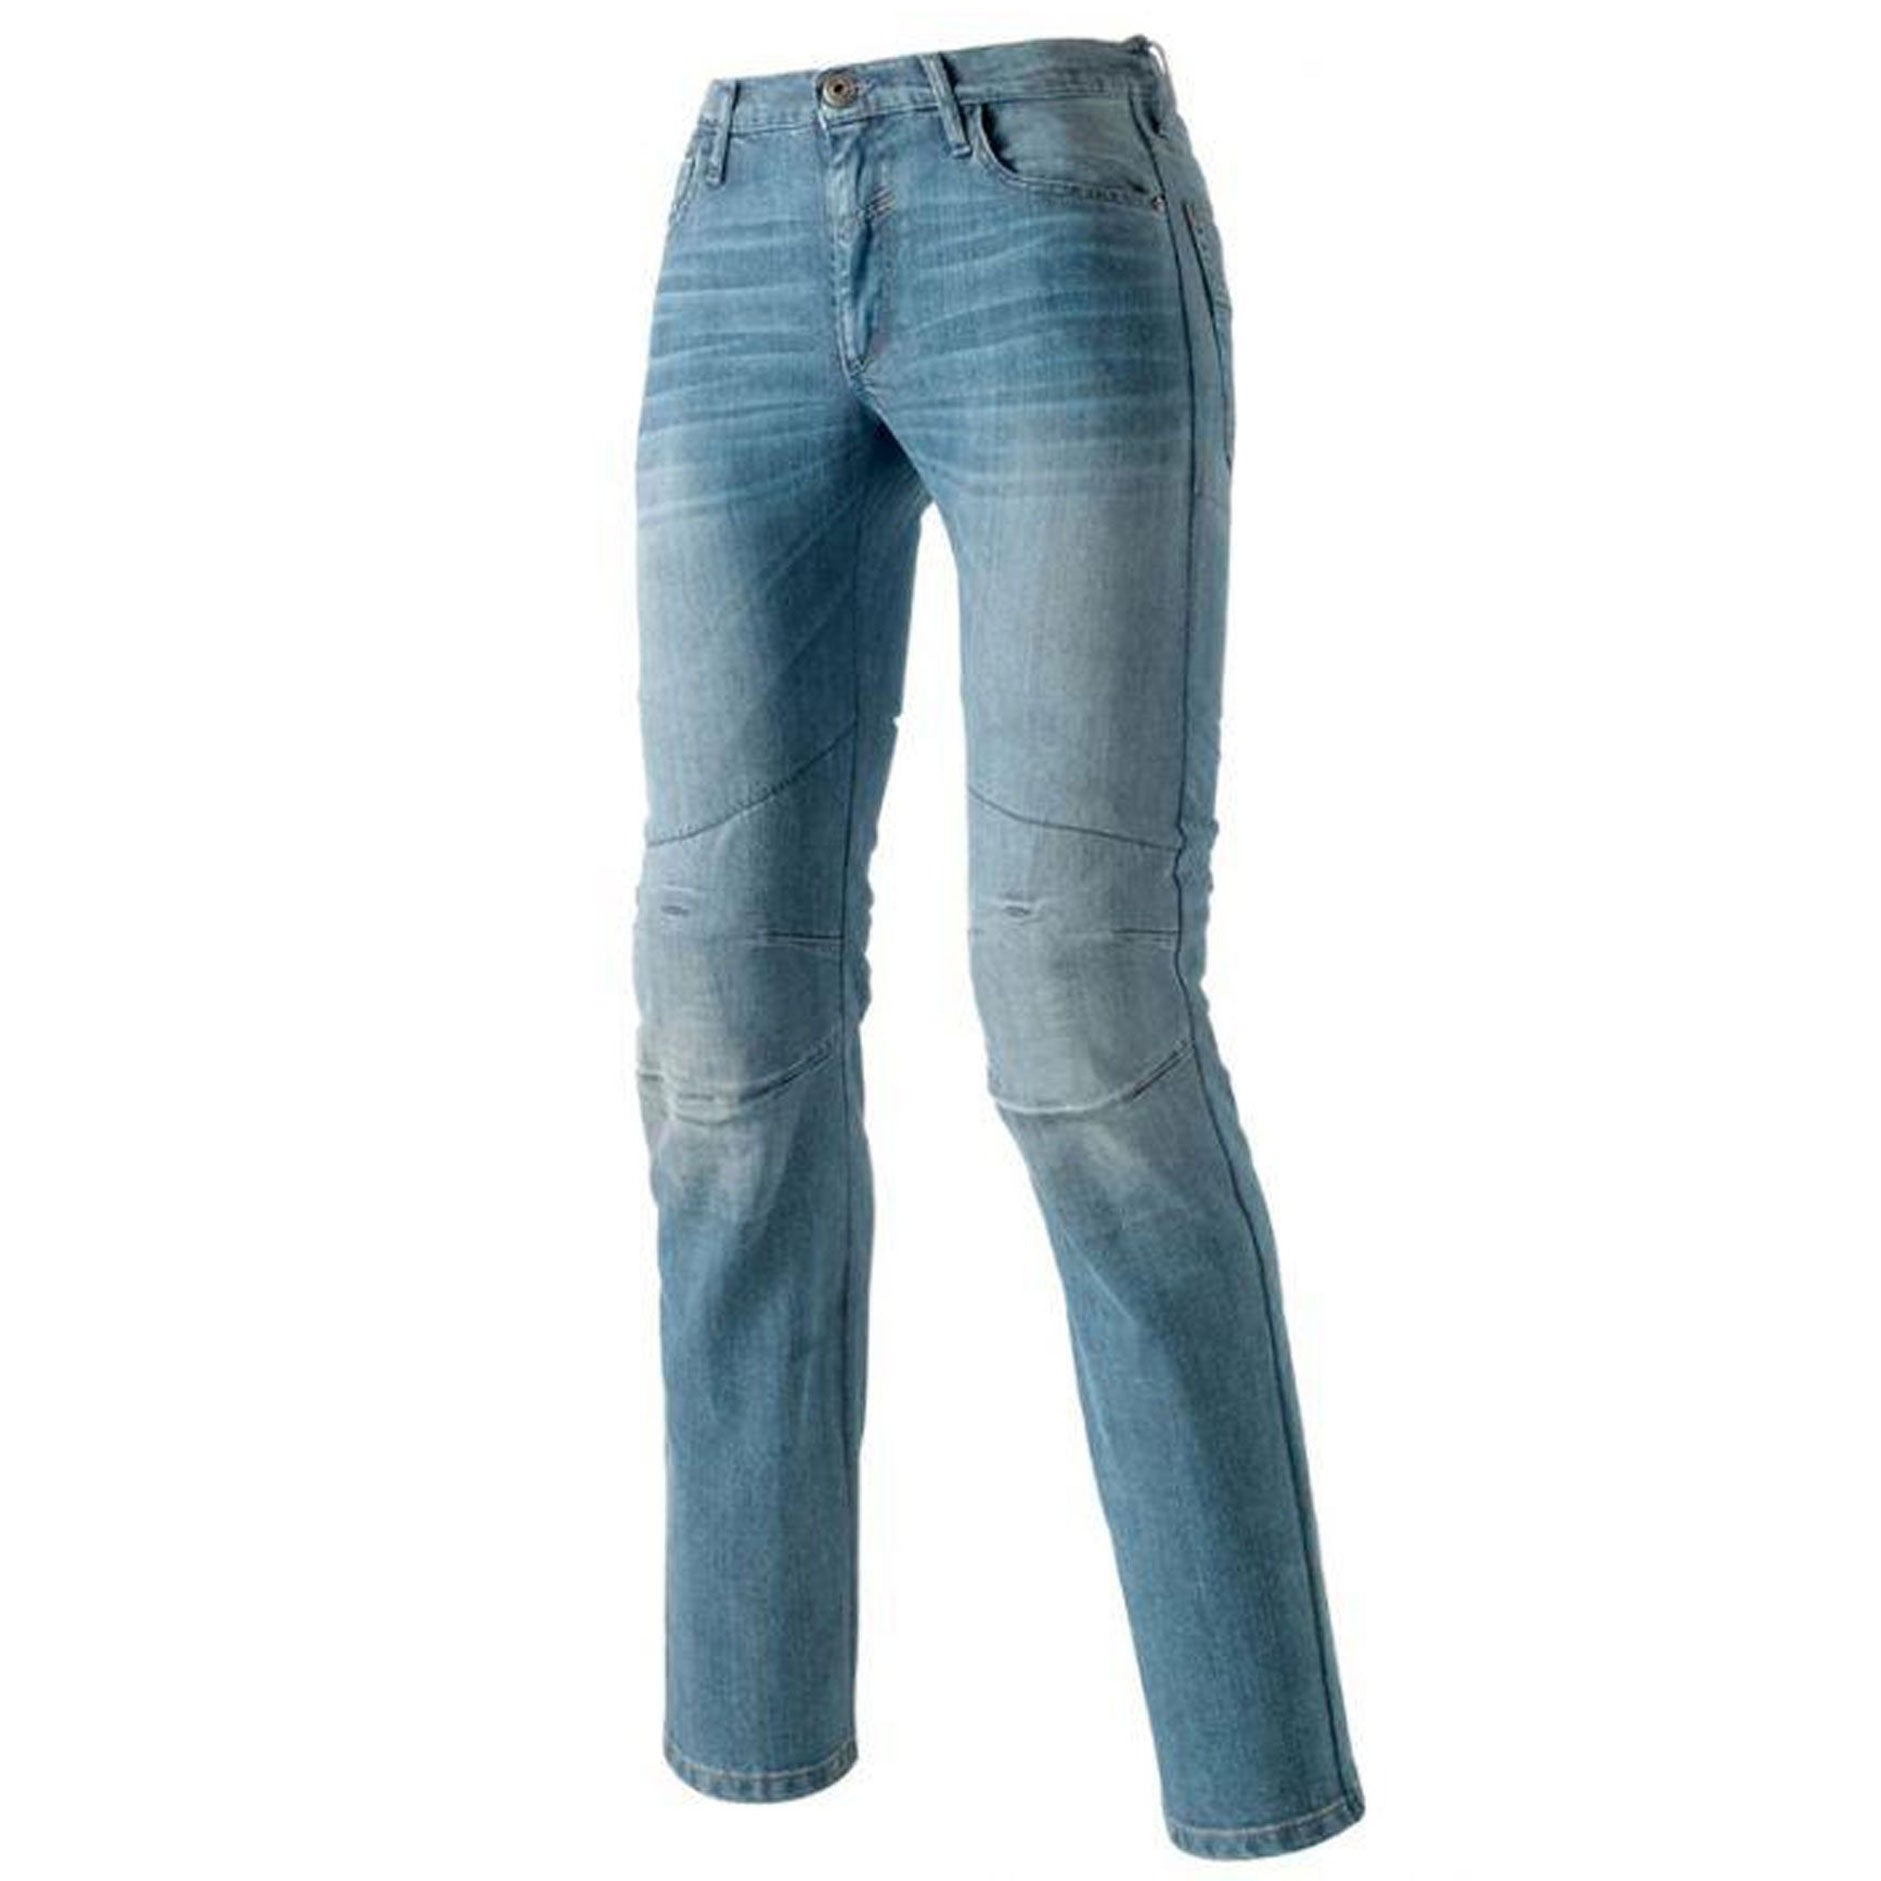 JEANS CLOVER SYS 4 DAMA